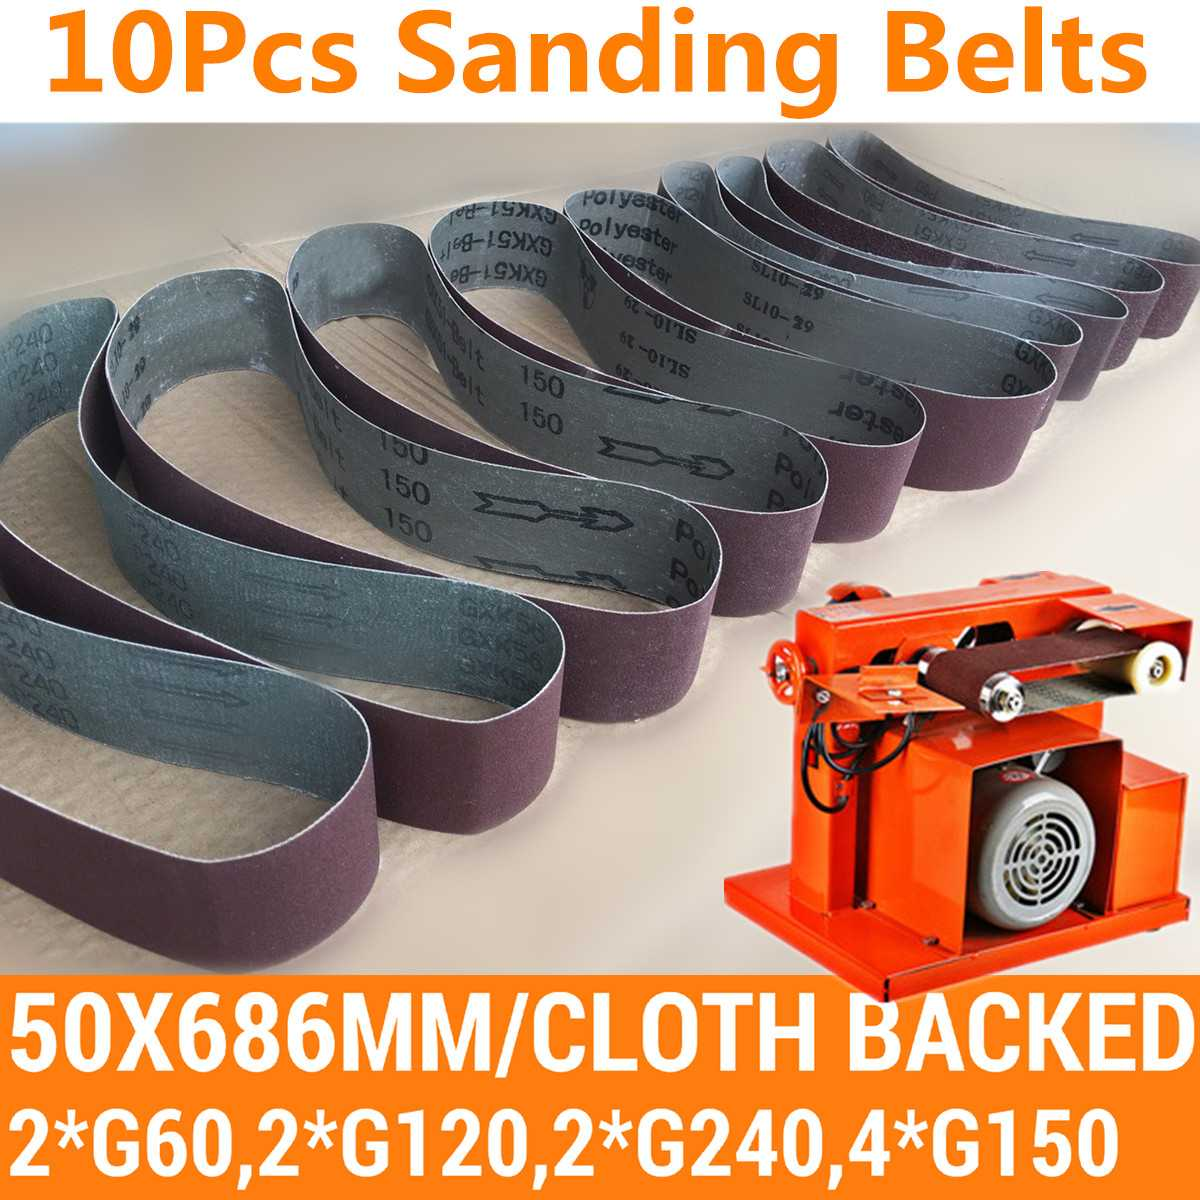 10pcs 50*686mm Abrasive Sanding Belts Sanding Paper For Belt Sanders Bench Grinder Grinding Polishing Tool 60-150 Grit